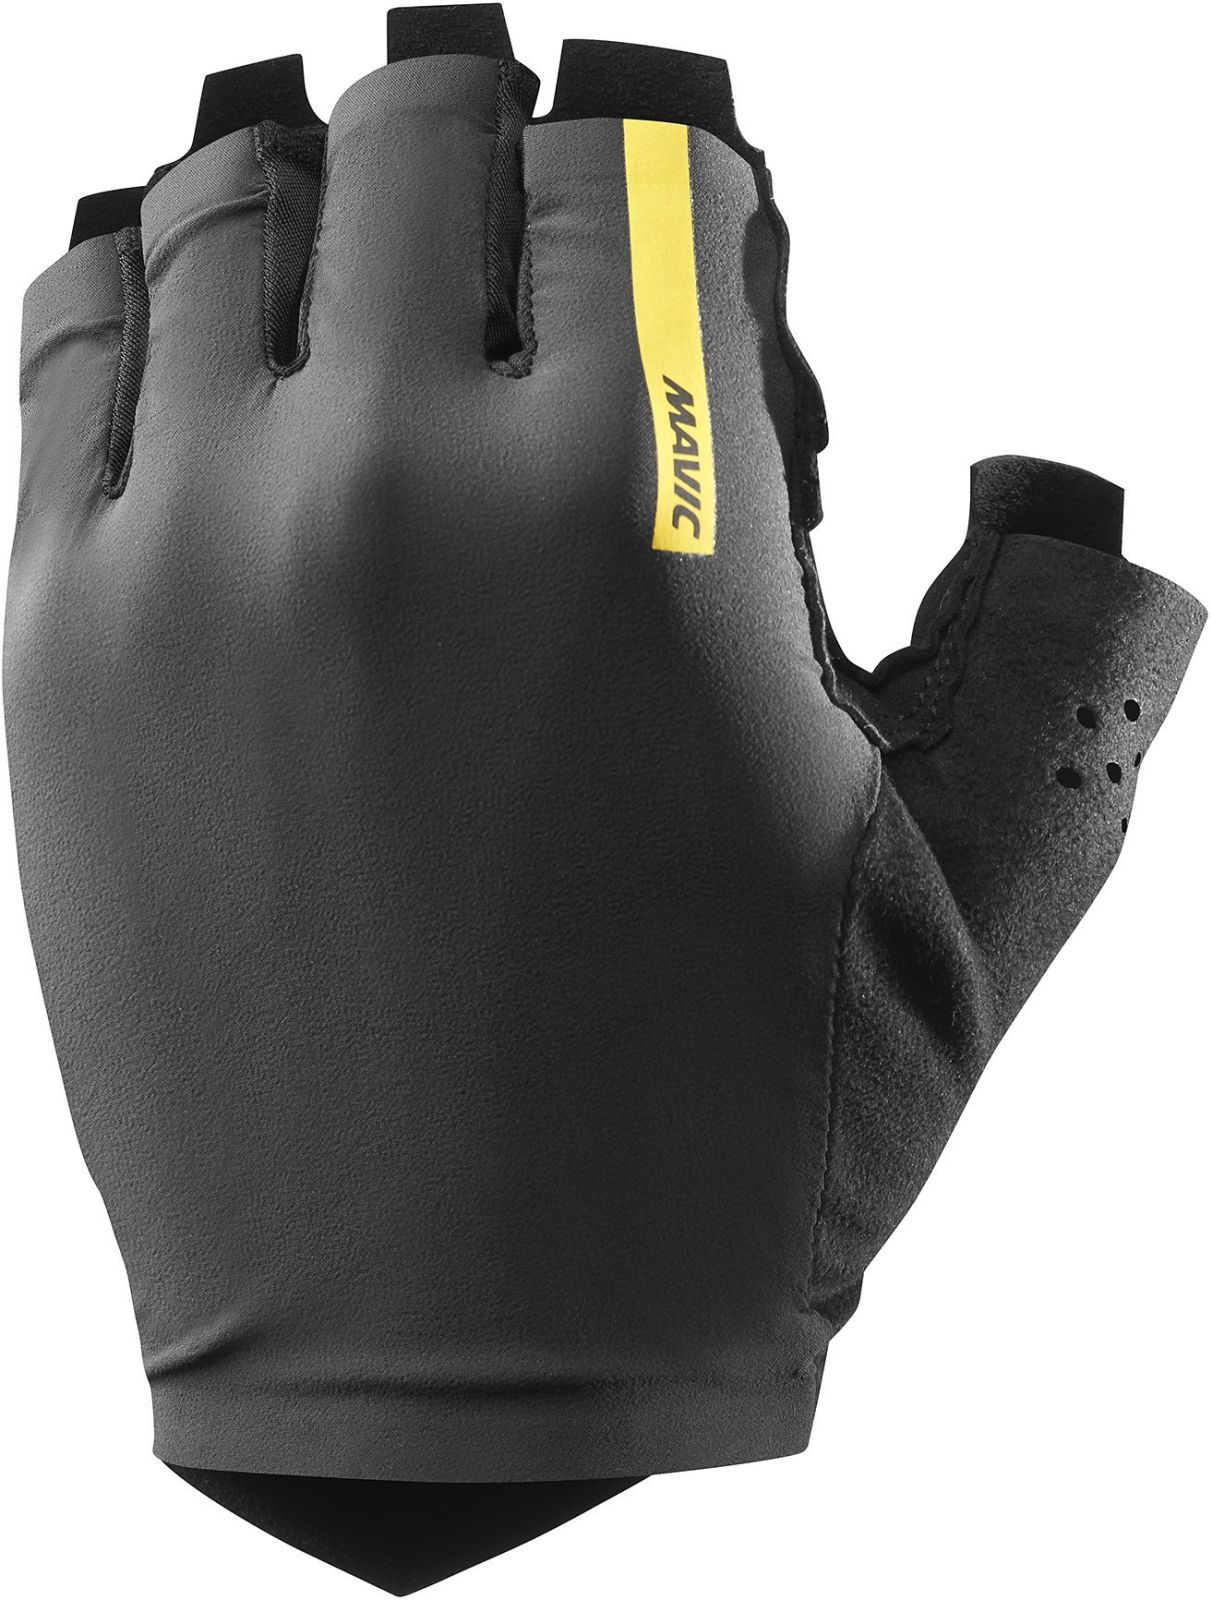 Mavic Cosmic Pro Glove - Black/Black L